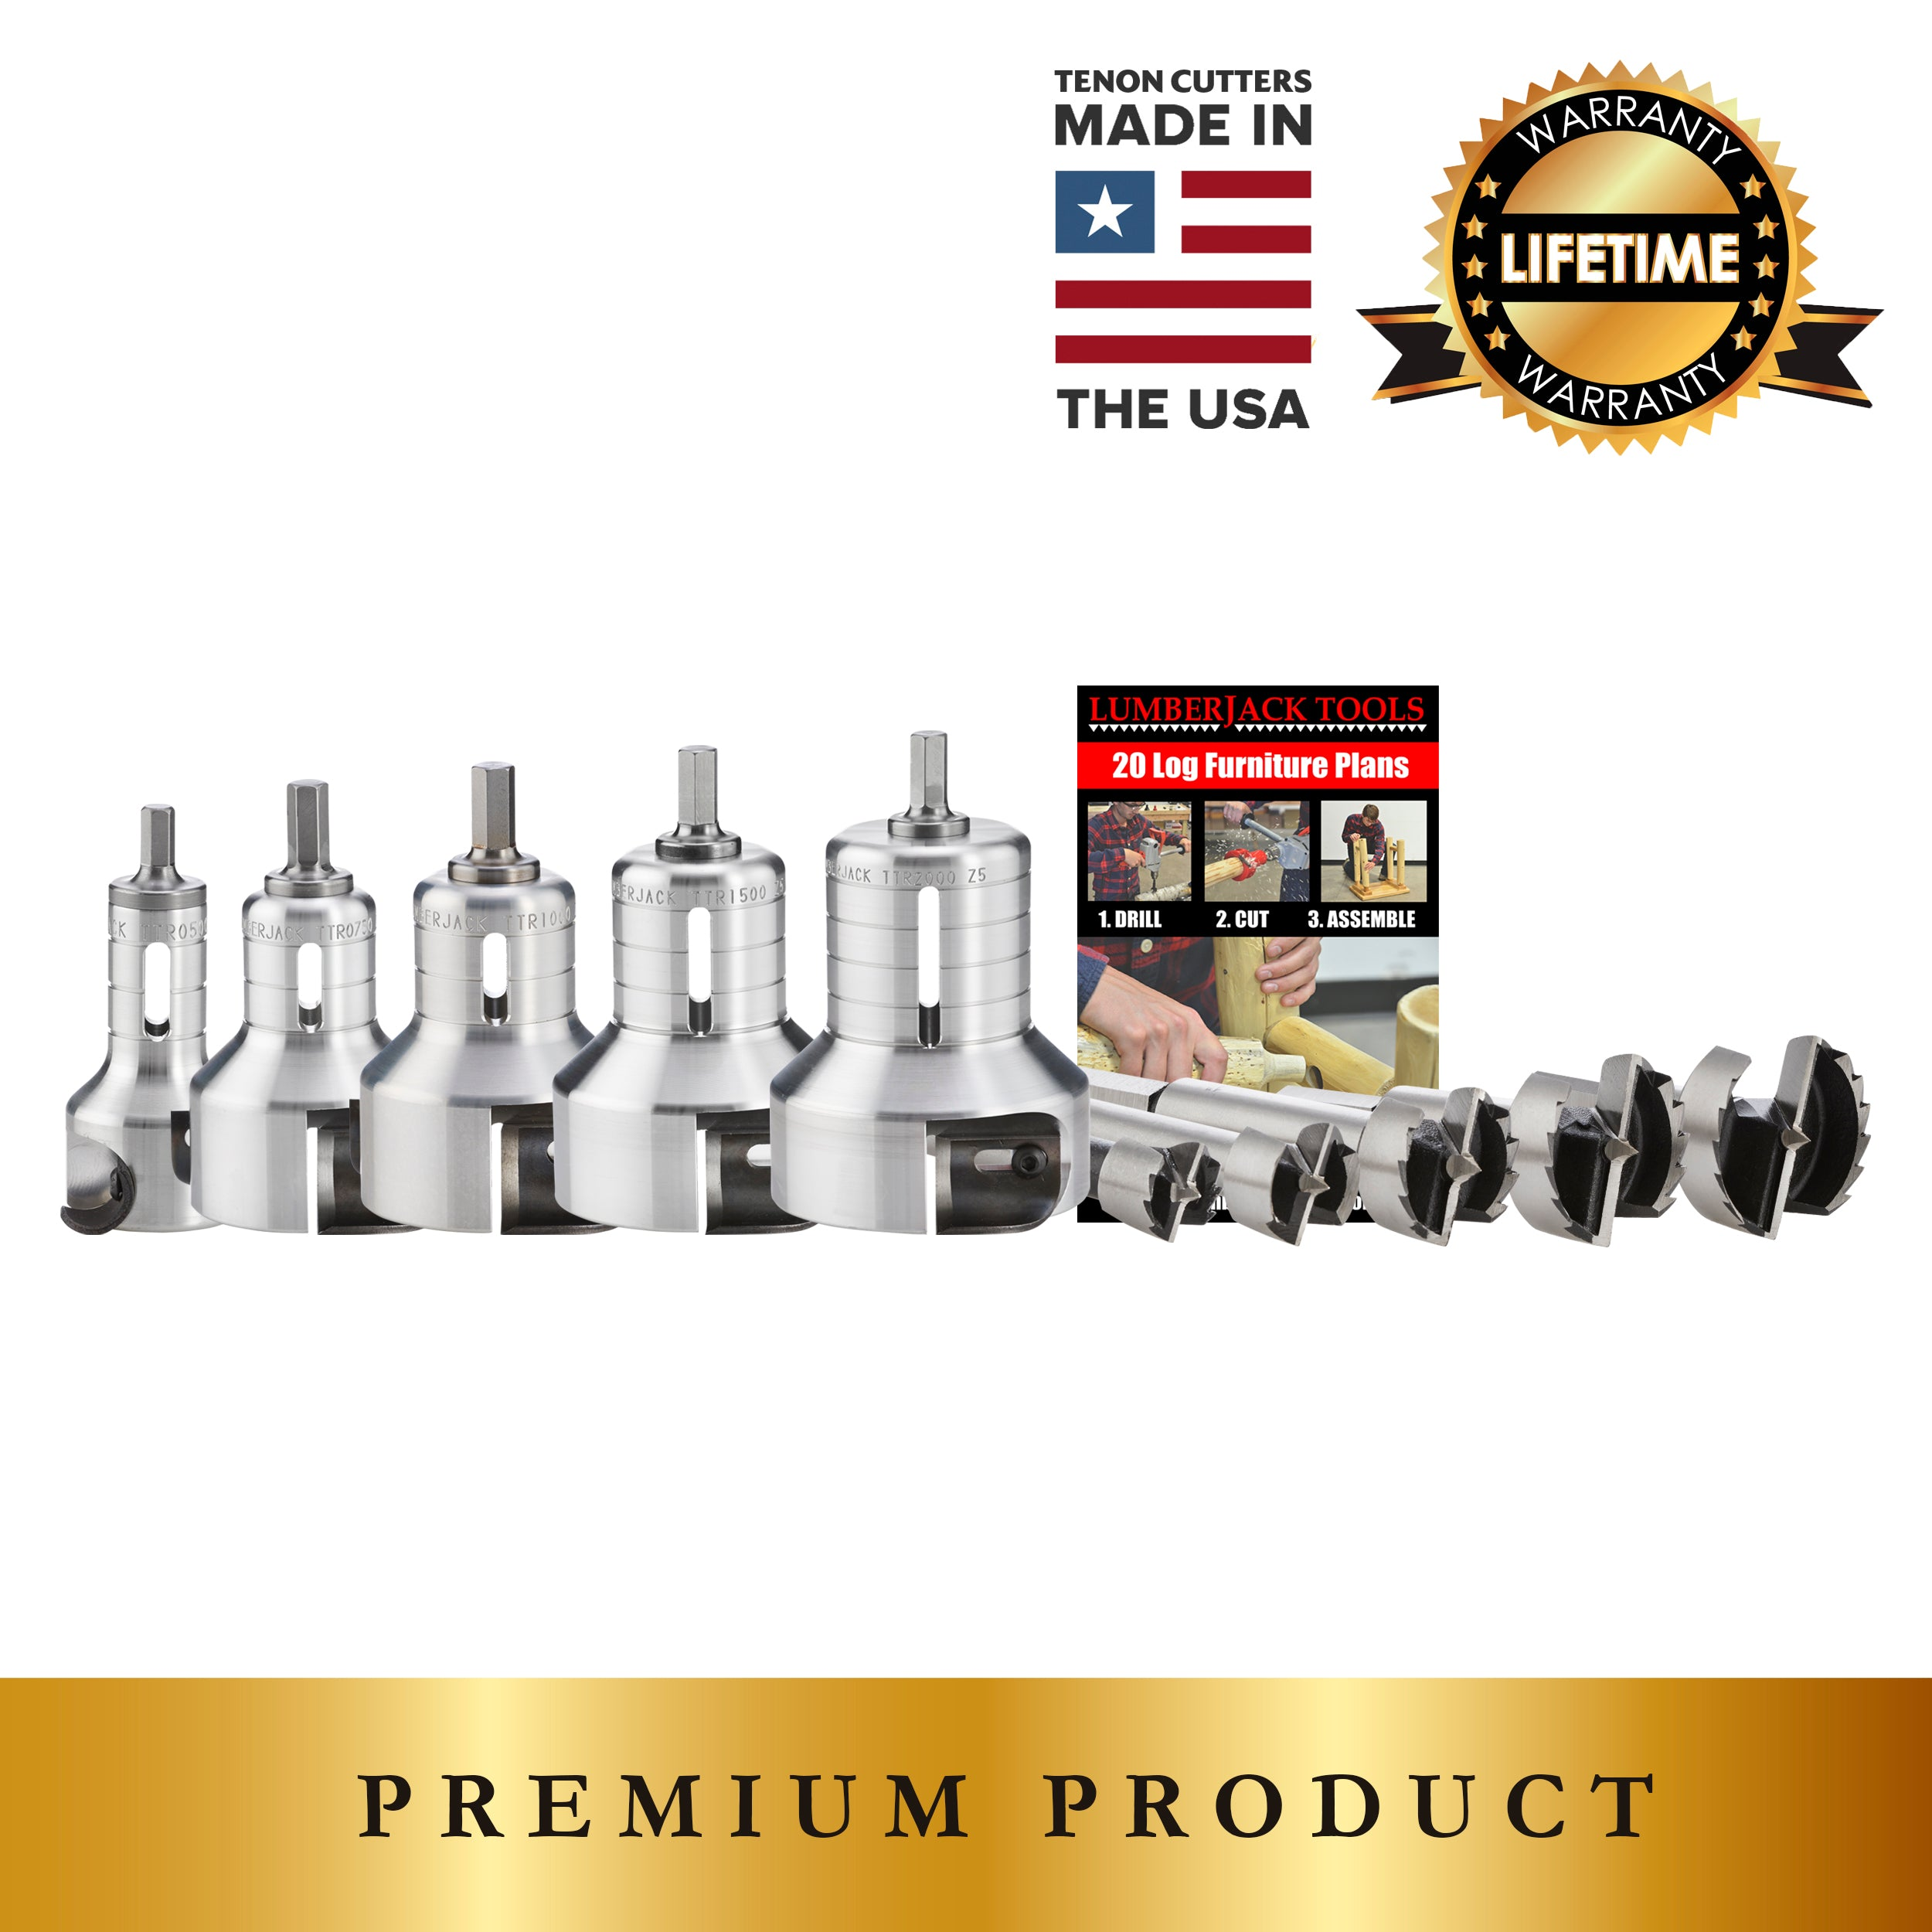 Pro Series Professional Kit - USA made premium tenon cutters